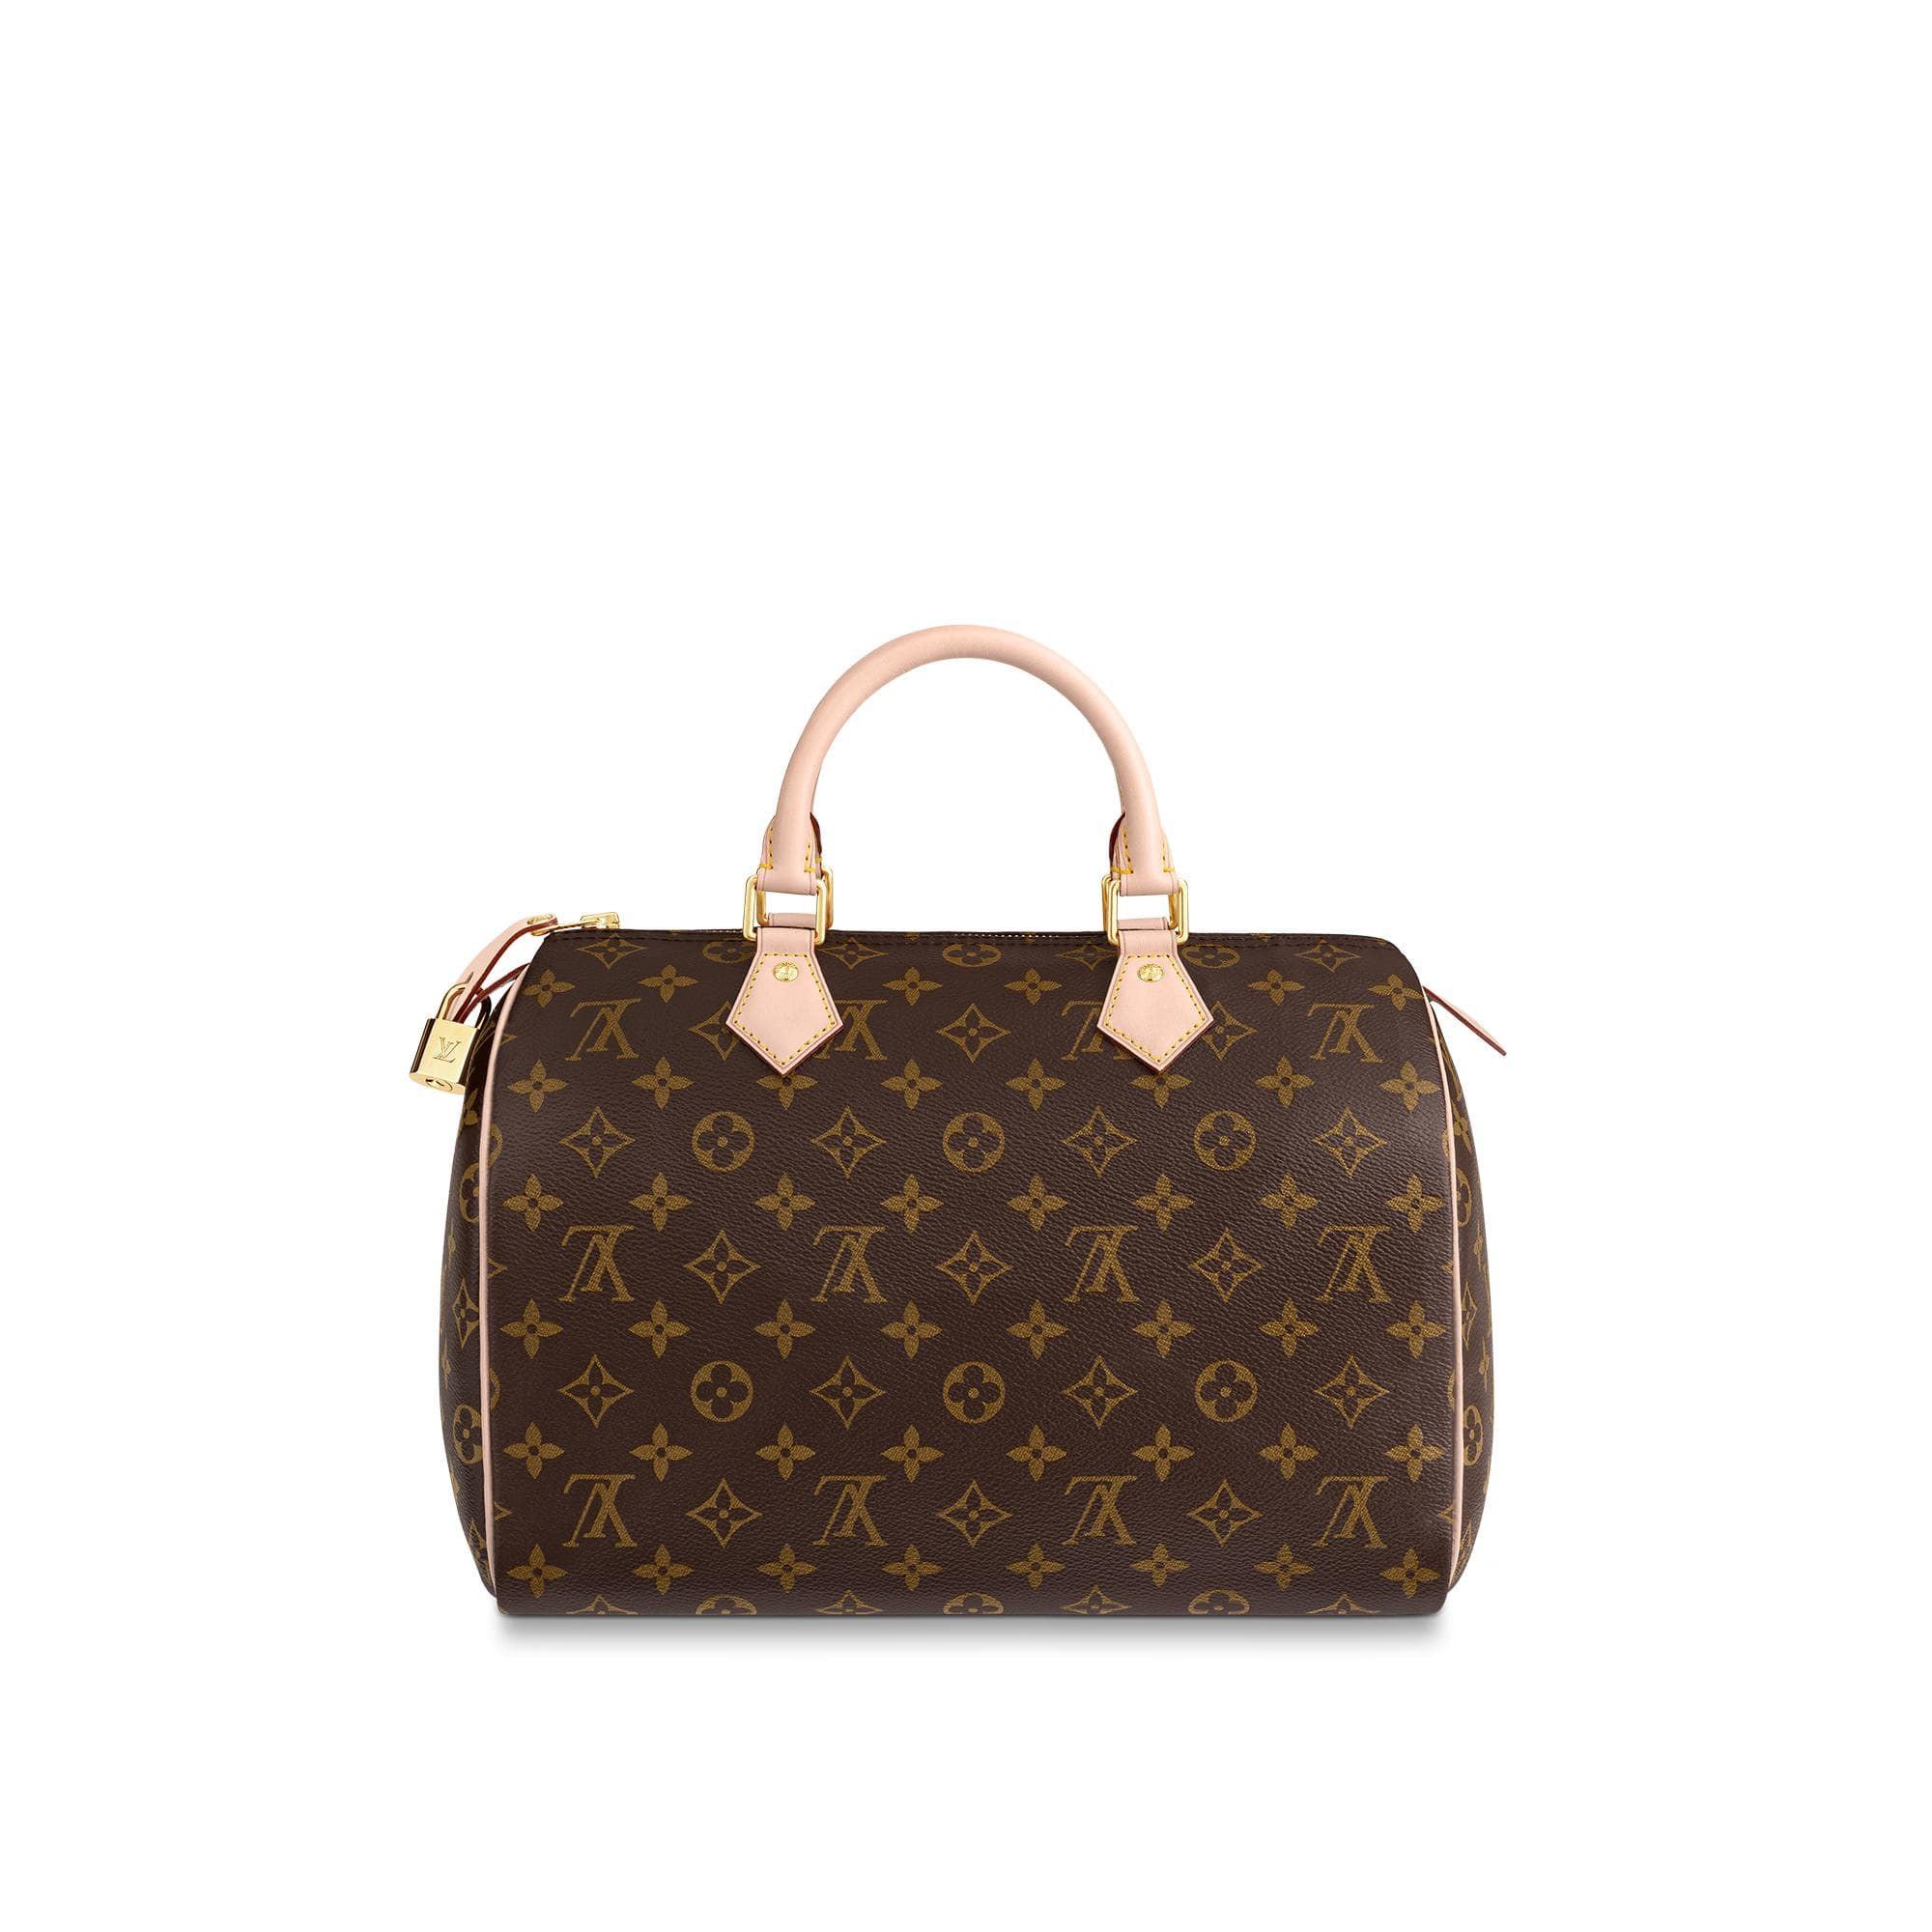 Speedy-Louis-Vuitton